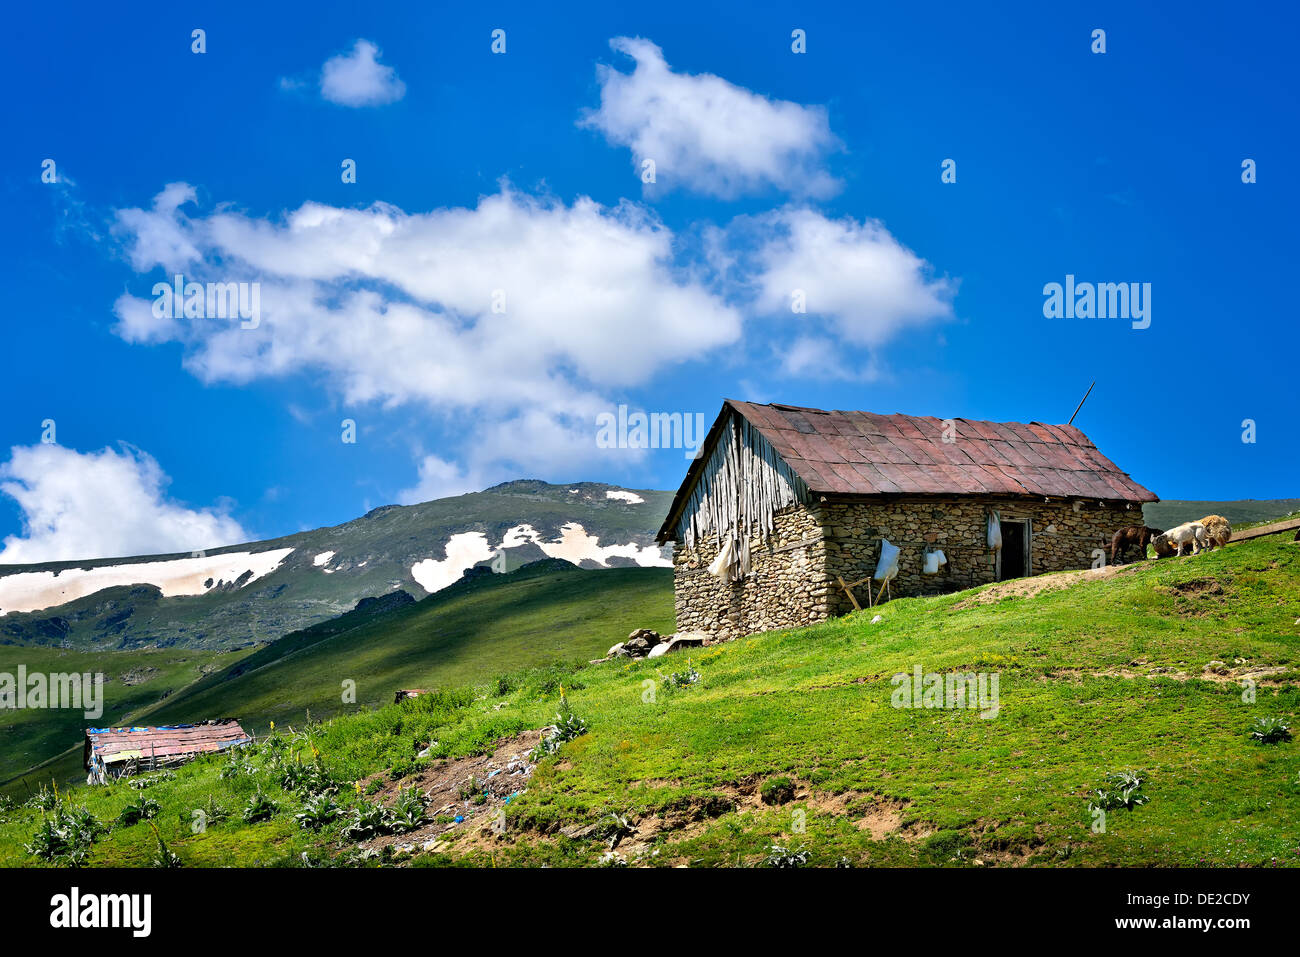 Landscape in Macedonia: mountains, forests, meadows and a farm. - Stock Image